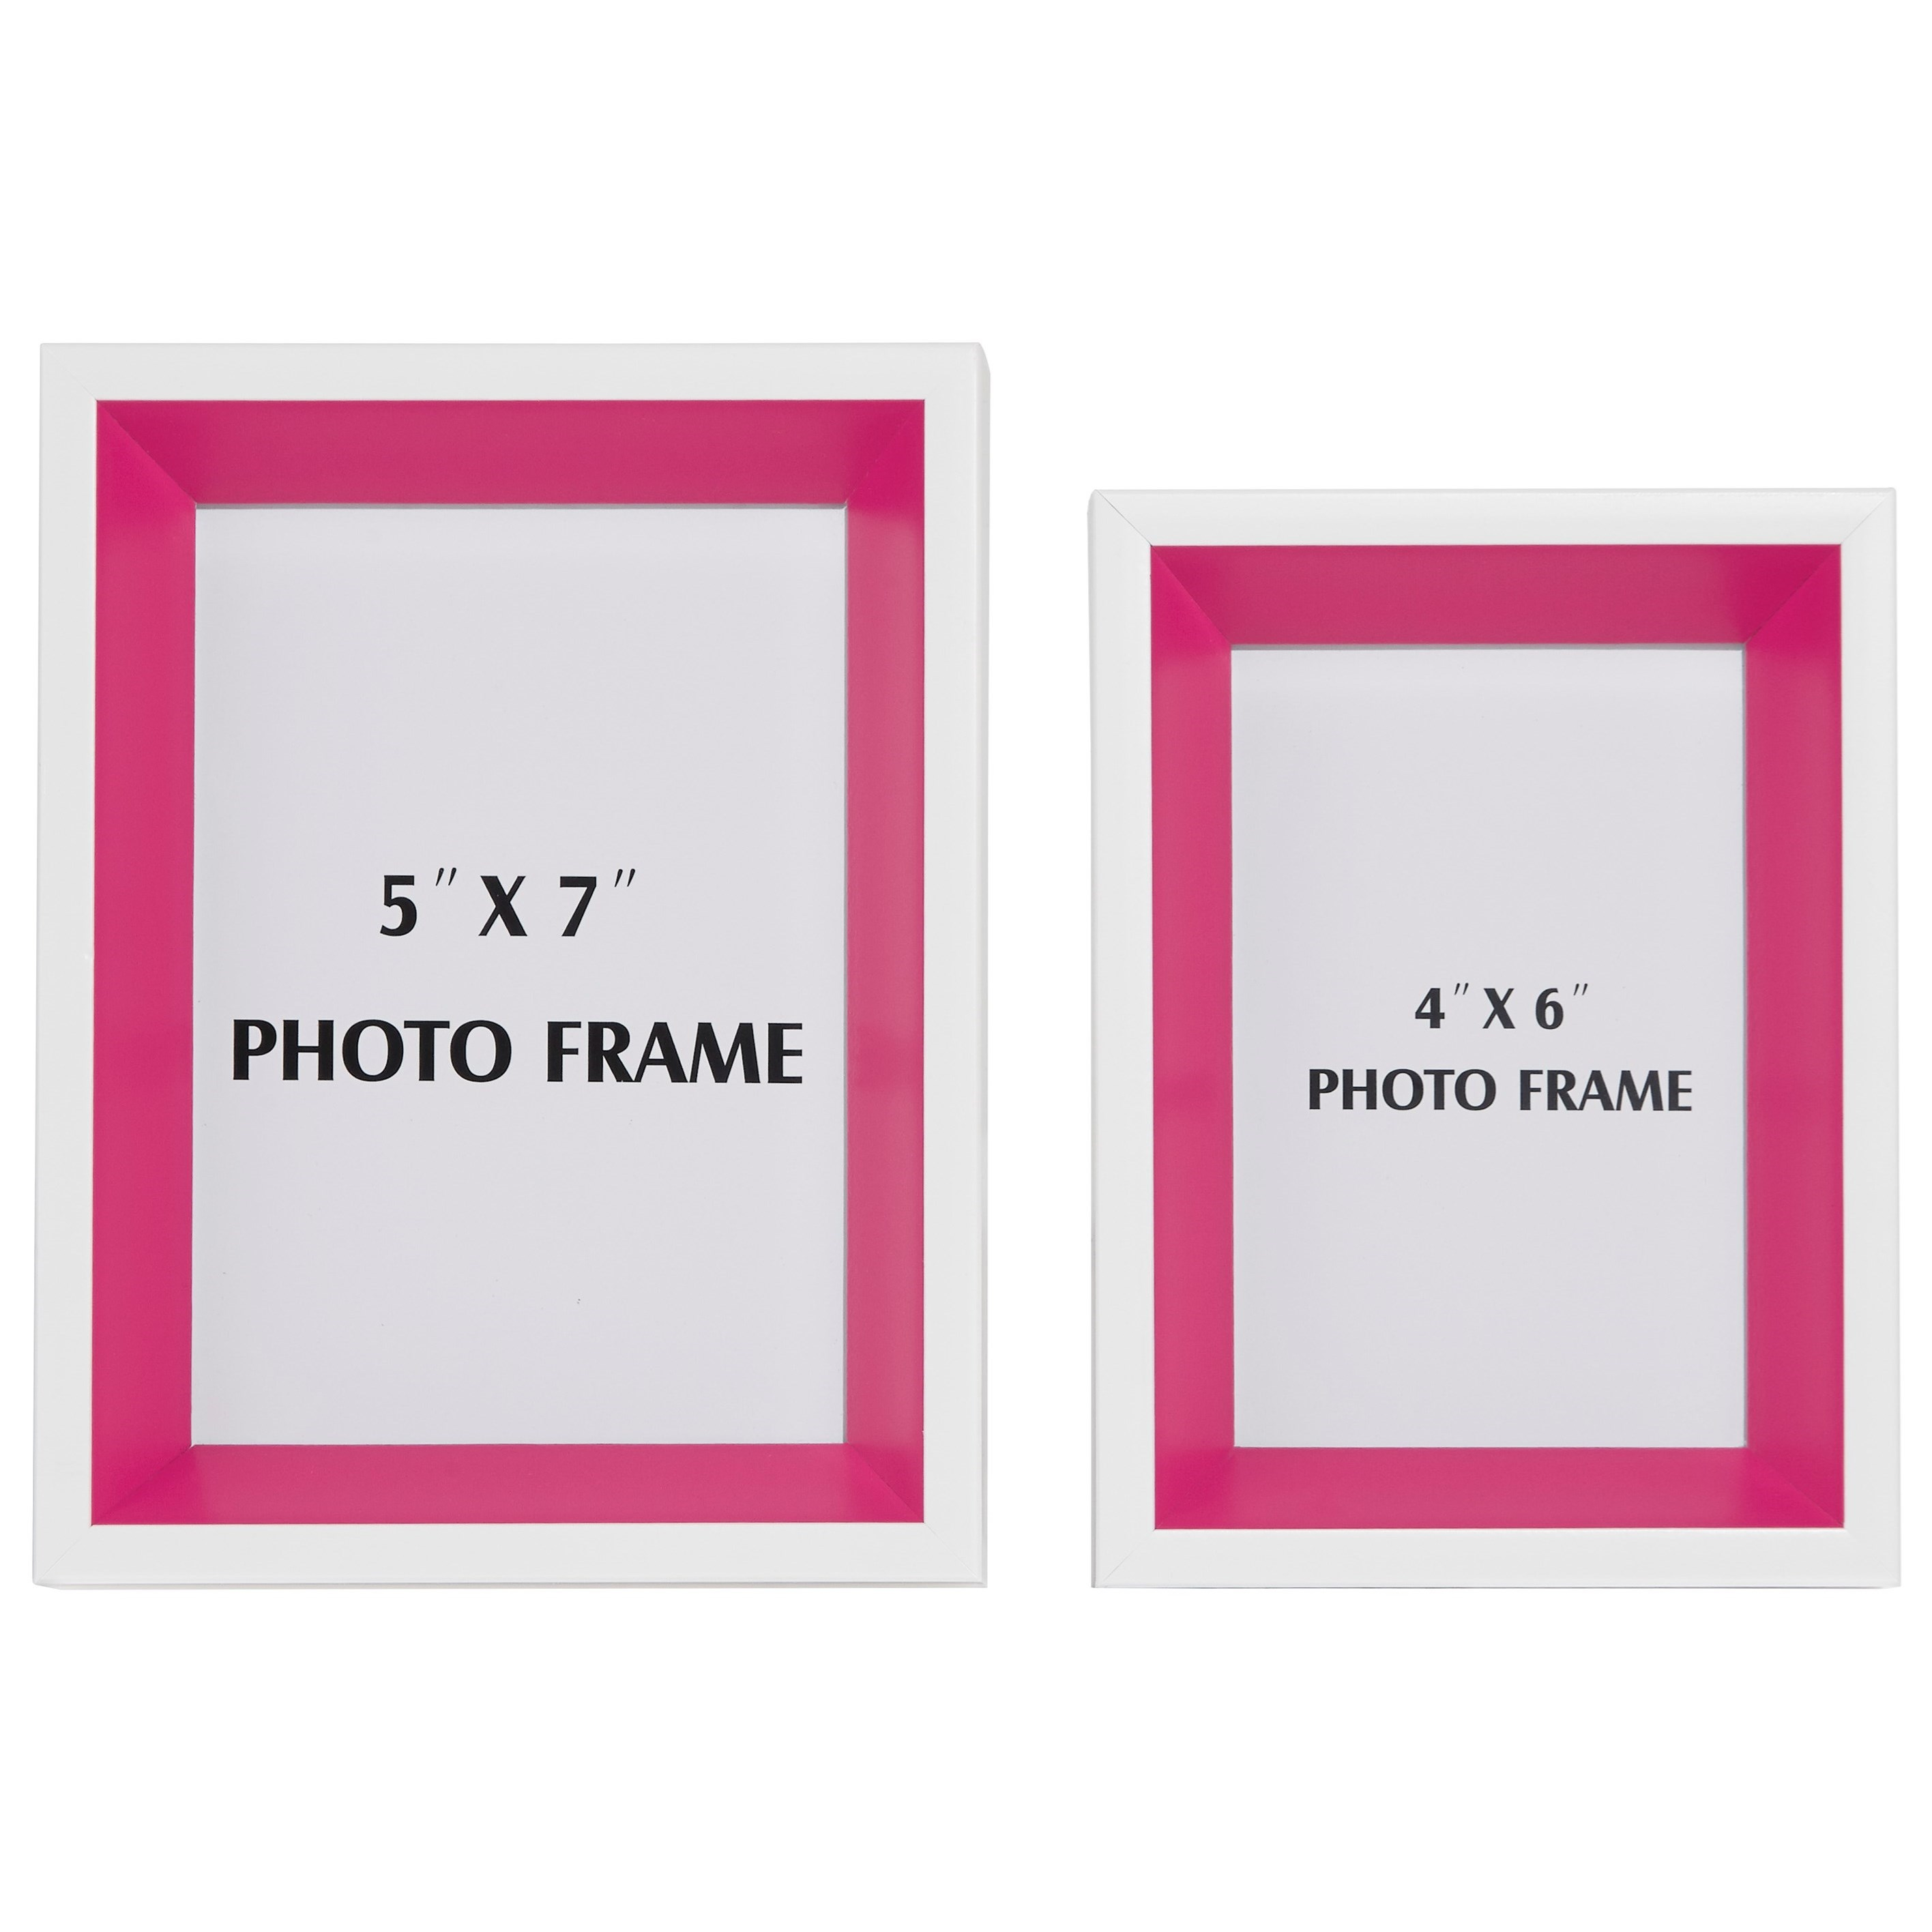 Signature Design by Ashley Accents Obie White/Pink Photo Frame (Set of 2) - Item Number: A2080004F